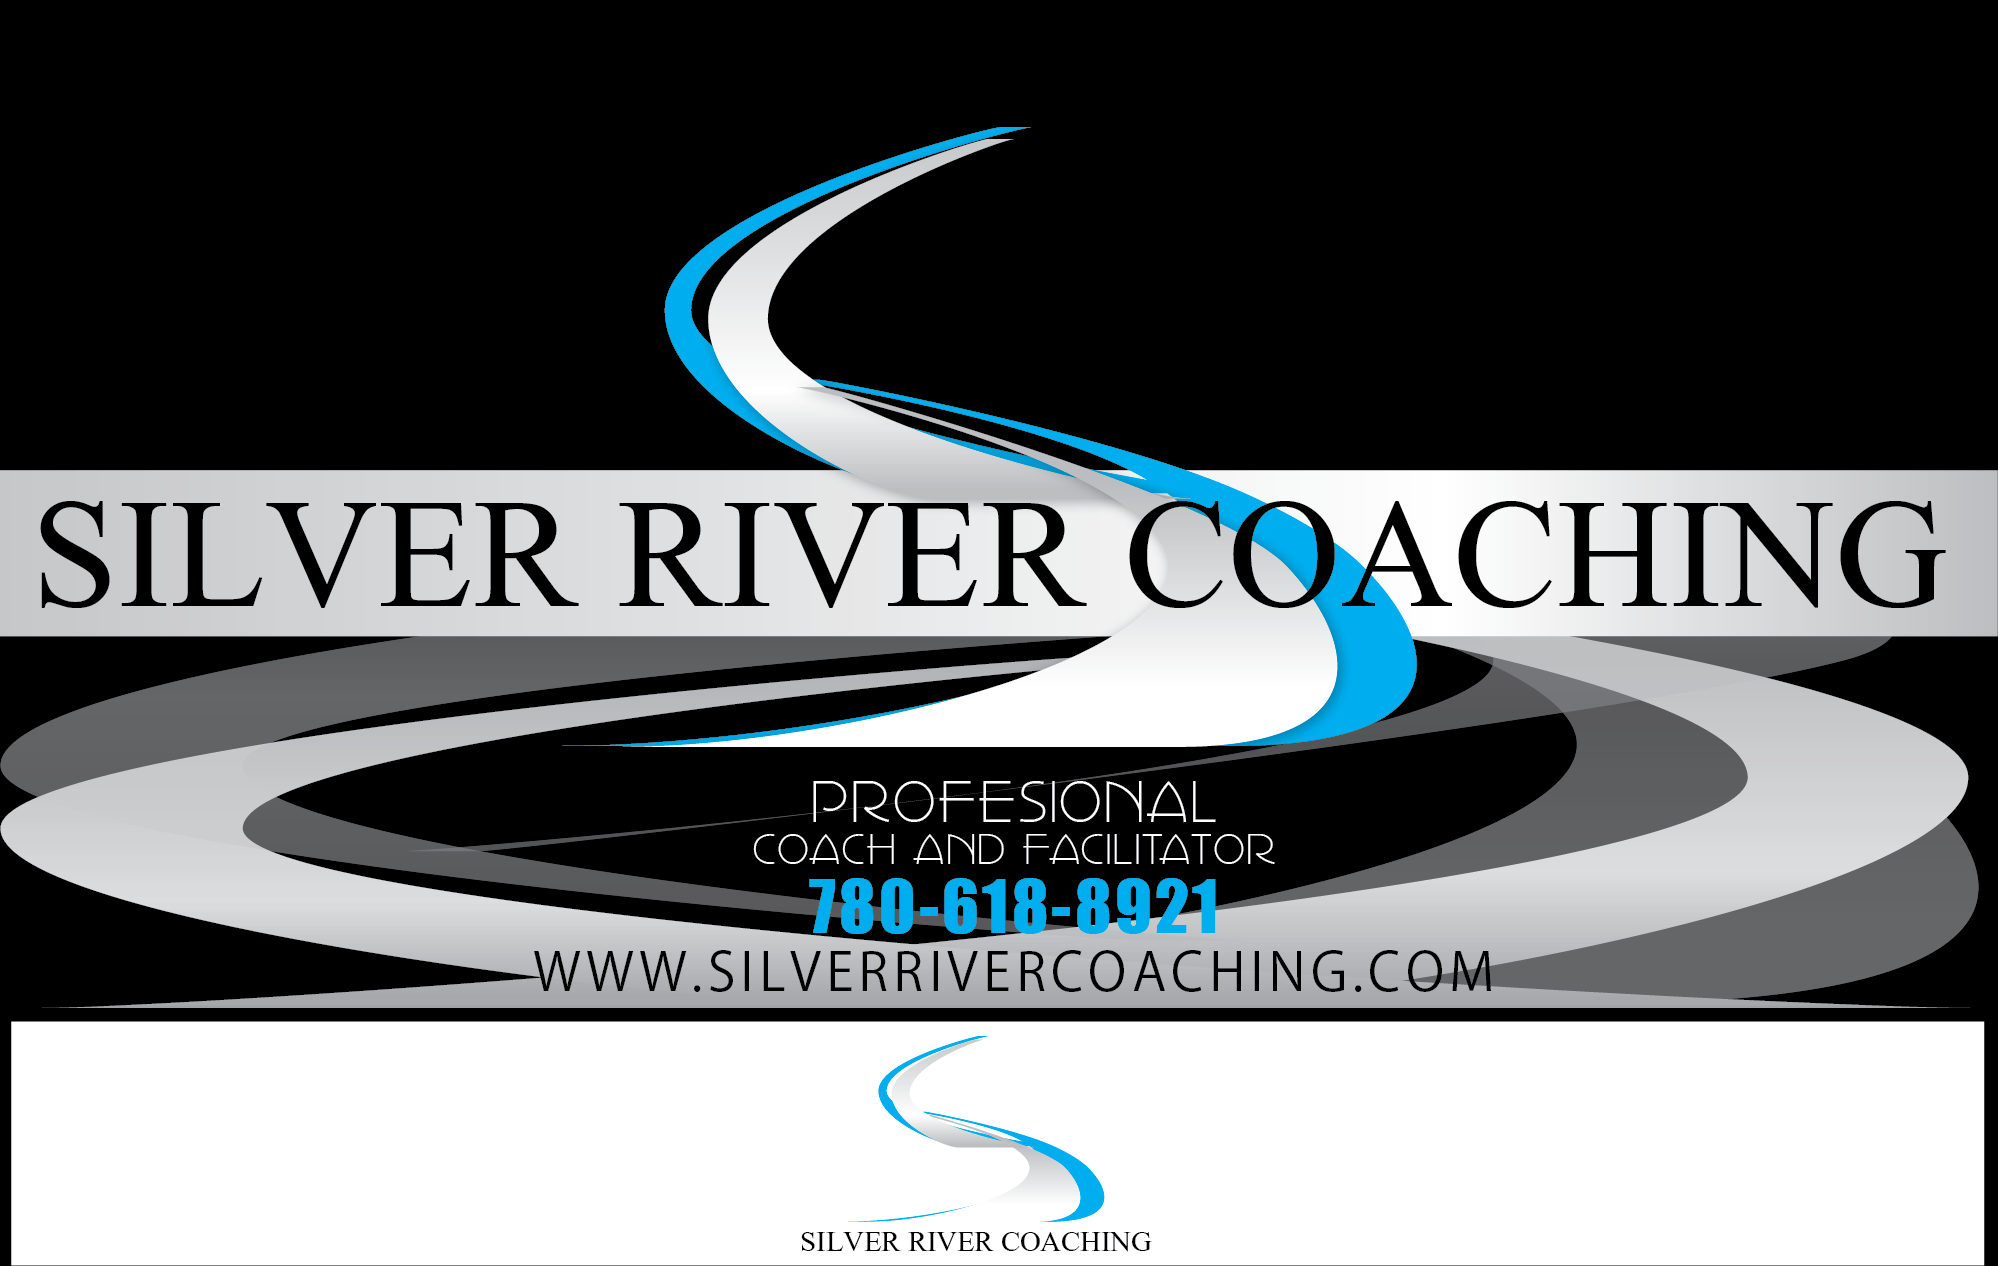 Logo Design by Md Iftekharul Islam Pavel - Entry No. 154 in the Logo Design Contest Logo Design Needed for Exciting New Company Silver River Coaching.